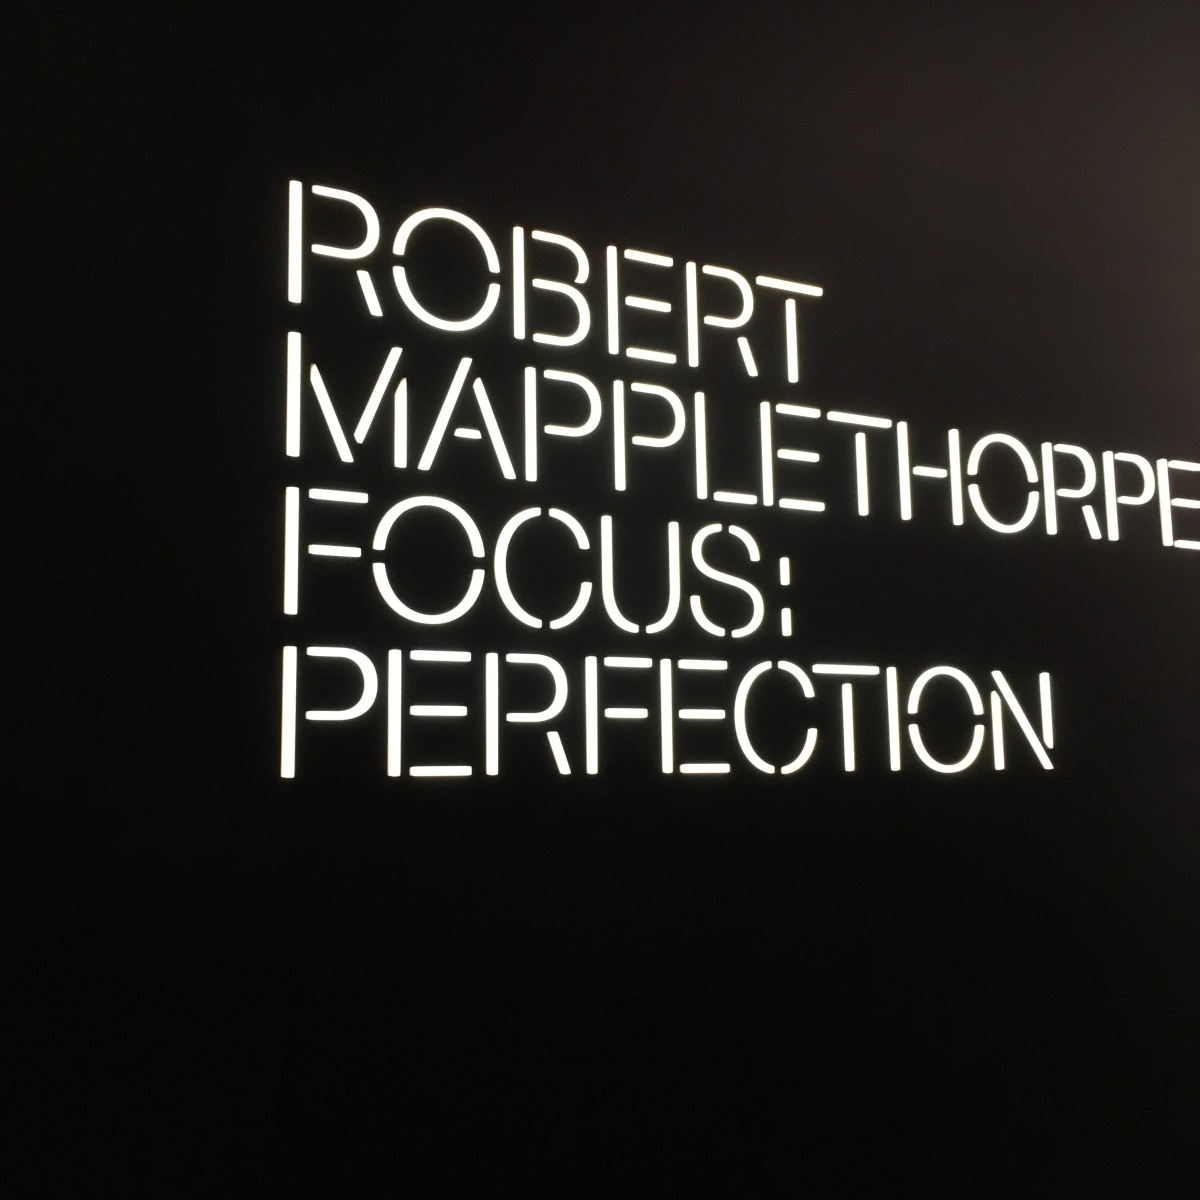 FOCUS : PERFECTION ROBERT MAPPLETHORPE